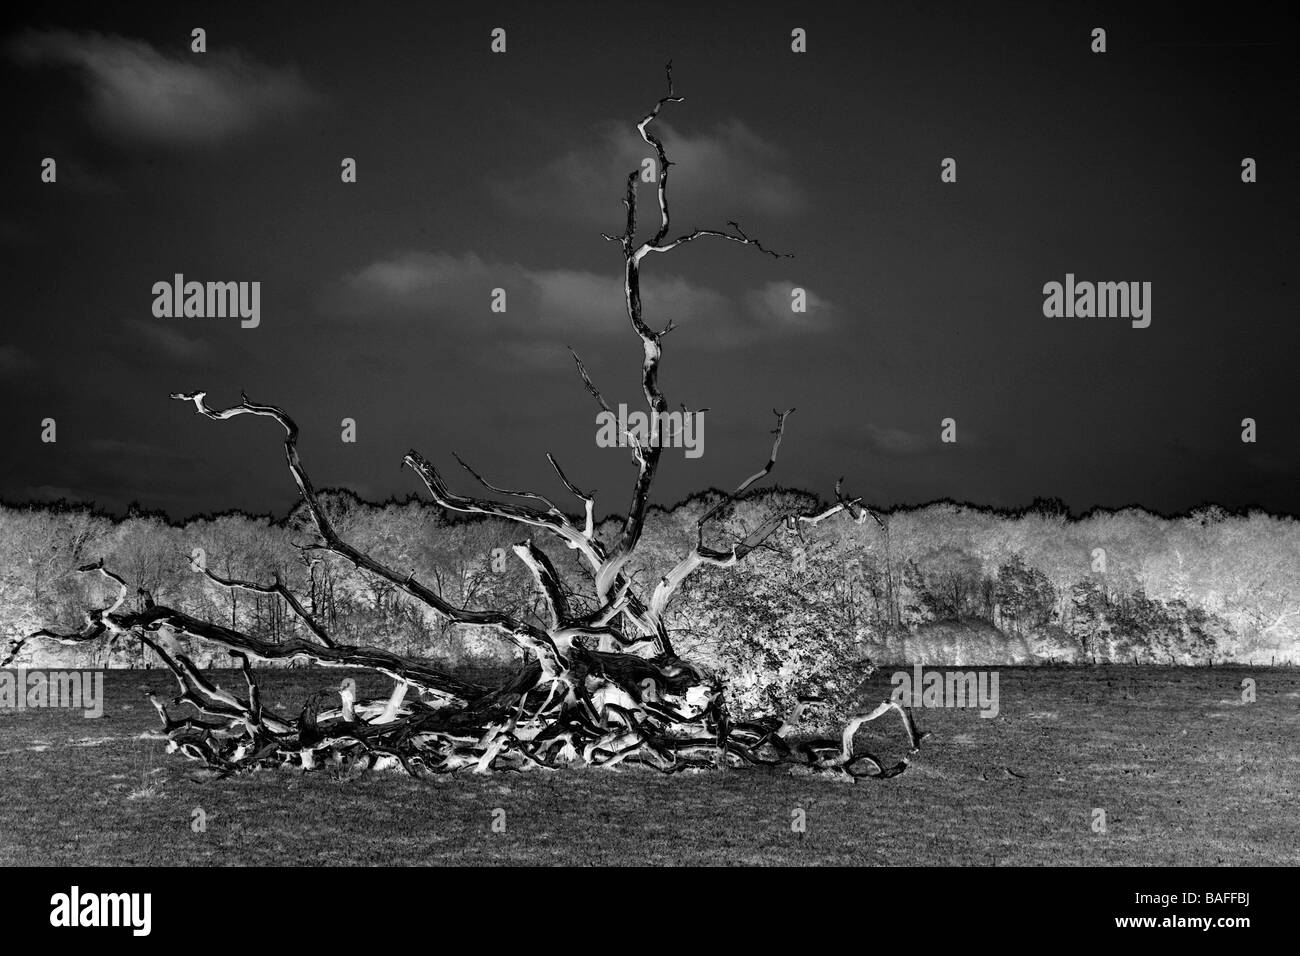 A surreal image of a fallen dead tree in a field. - Stock Image